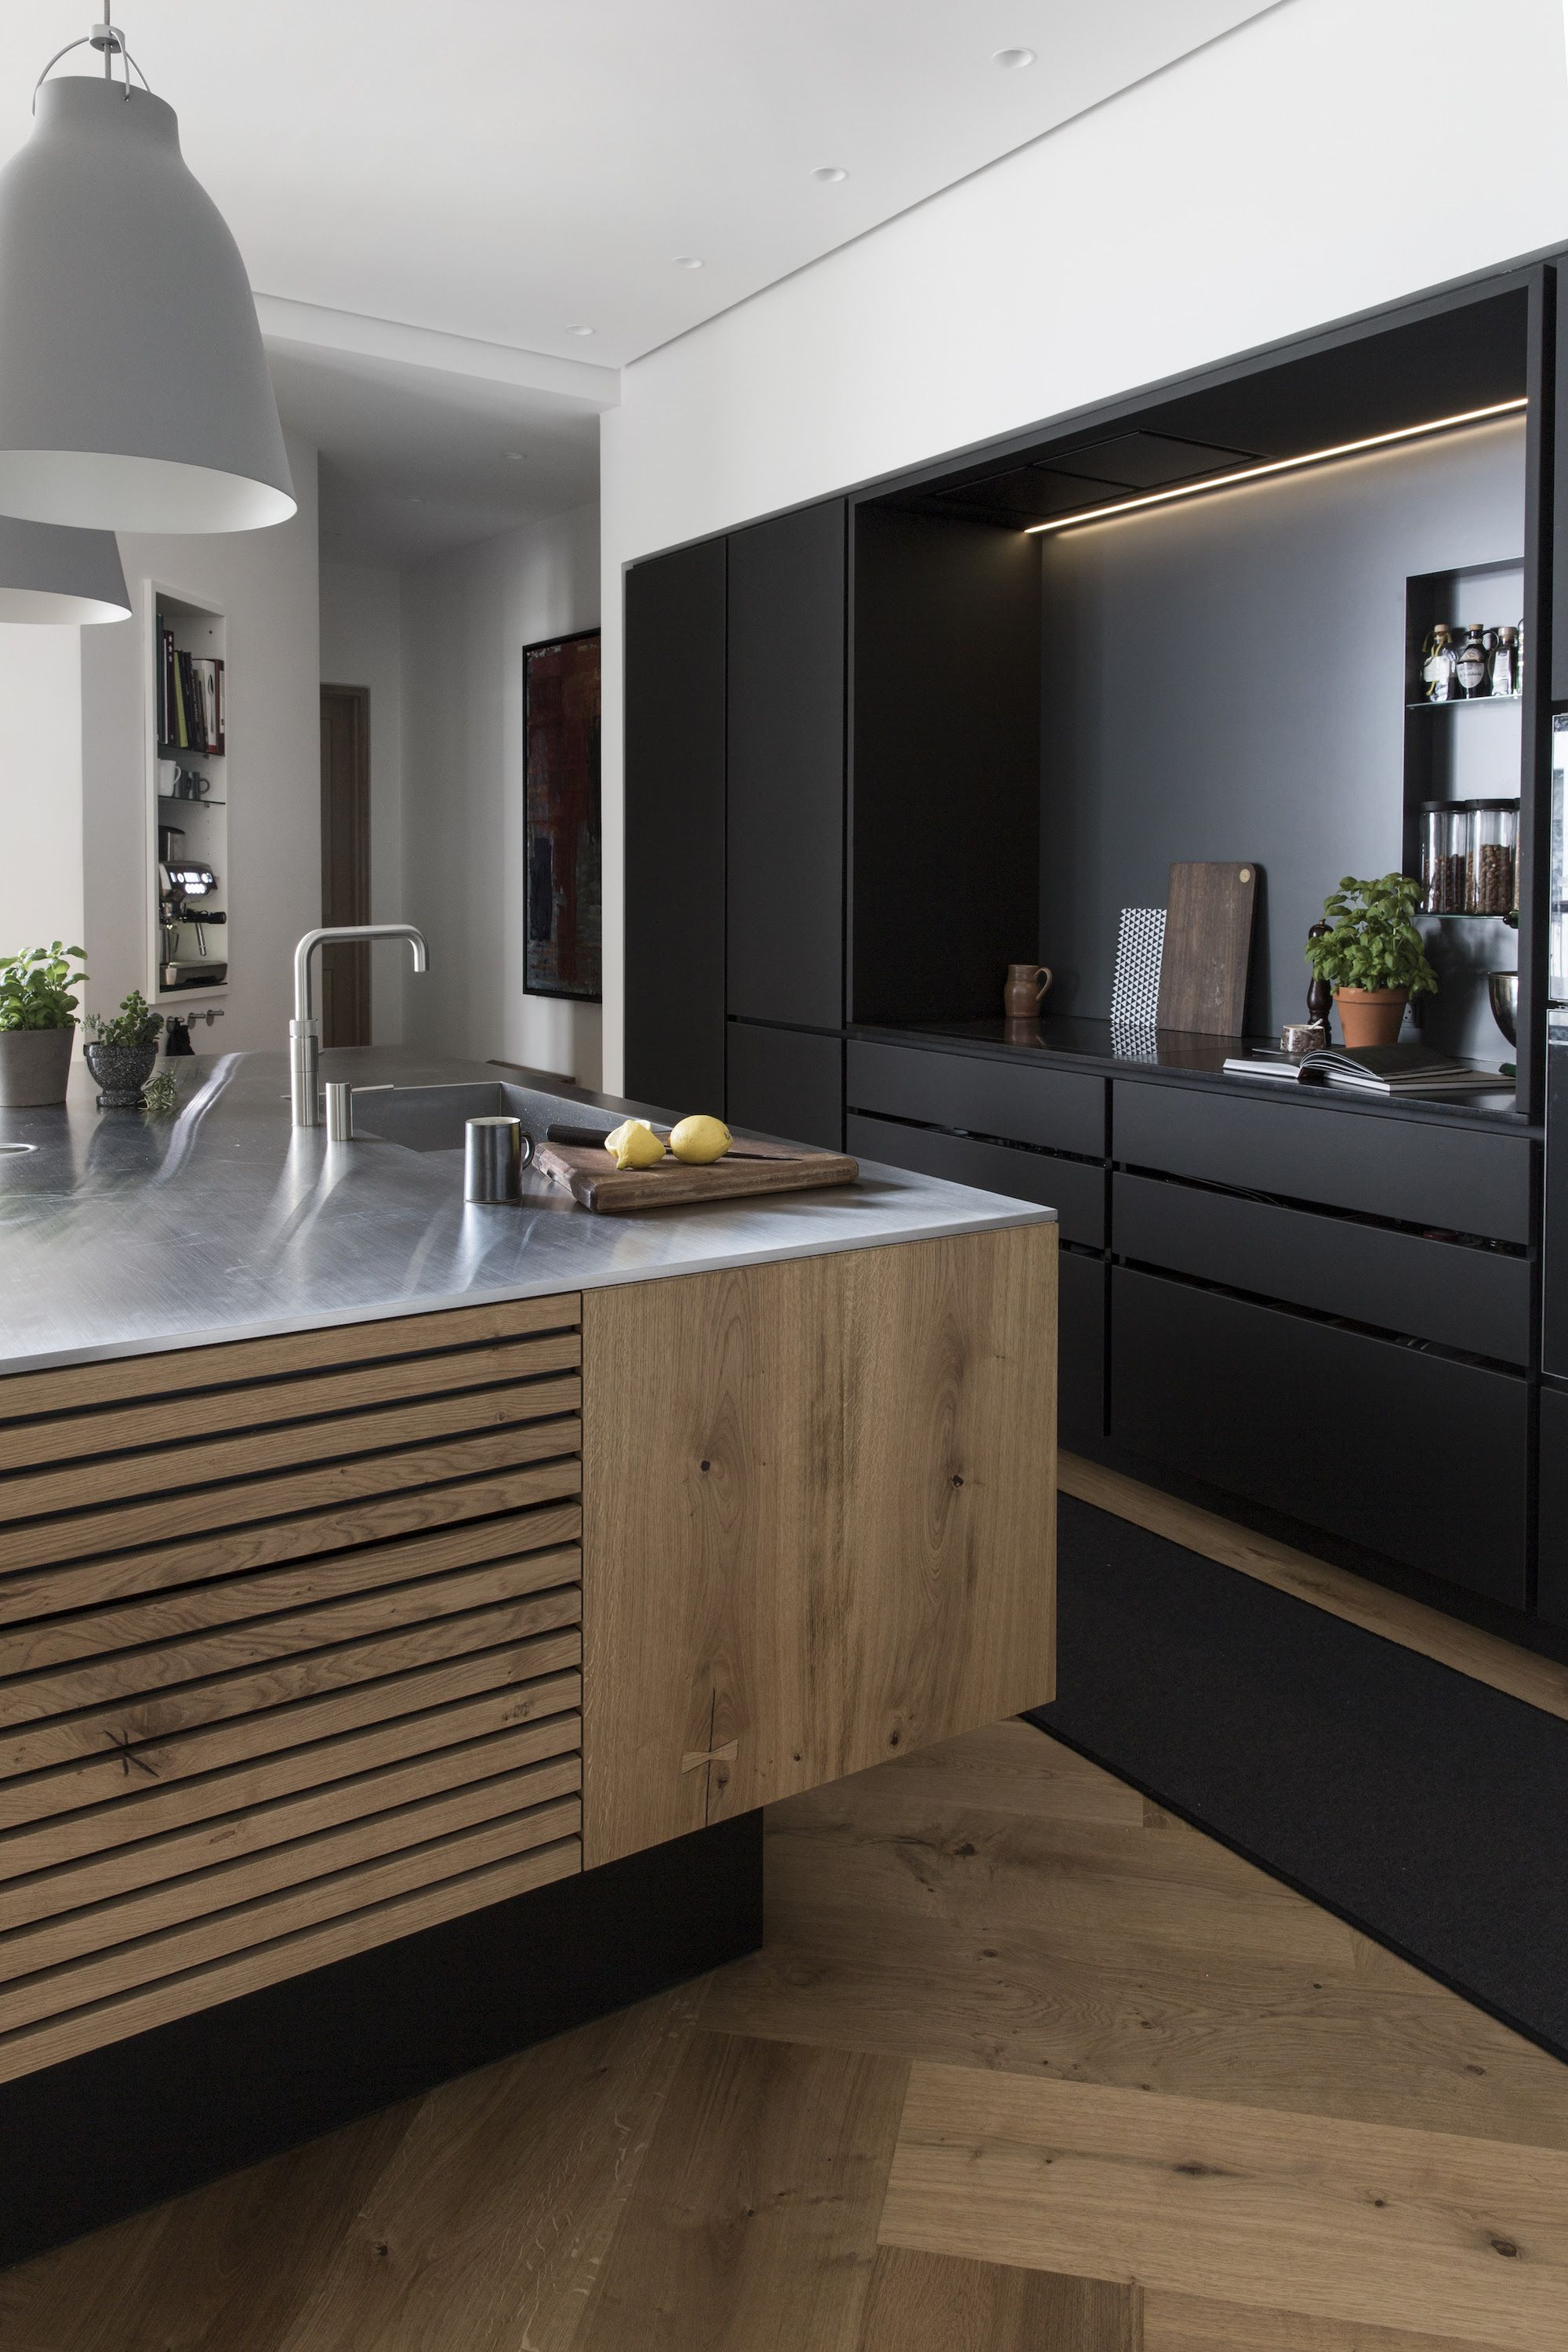 Black and natural wood contrast | Stile moderno con... nero & legno ...